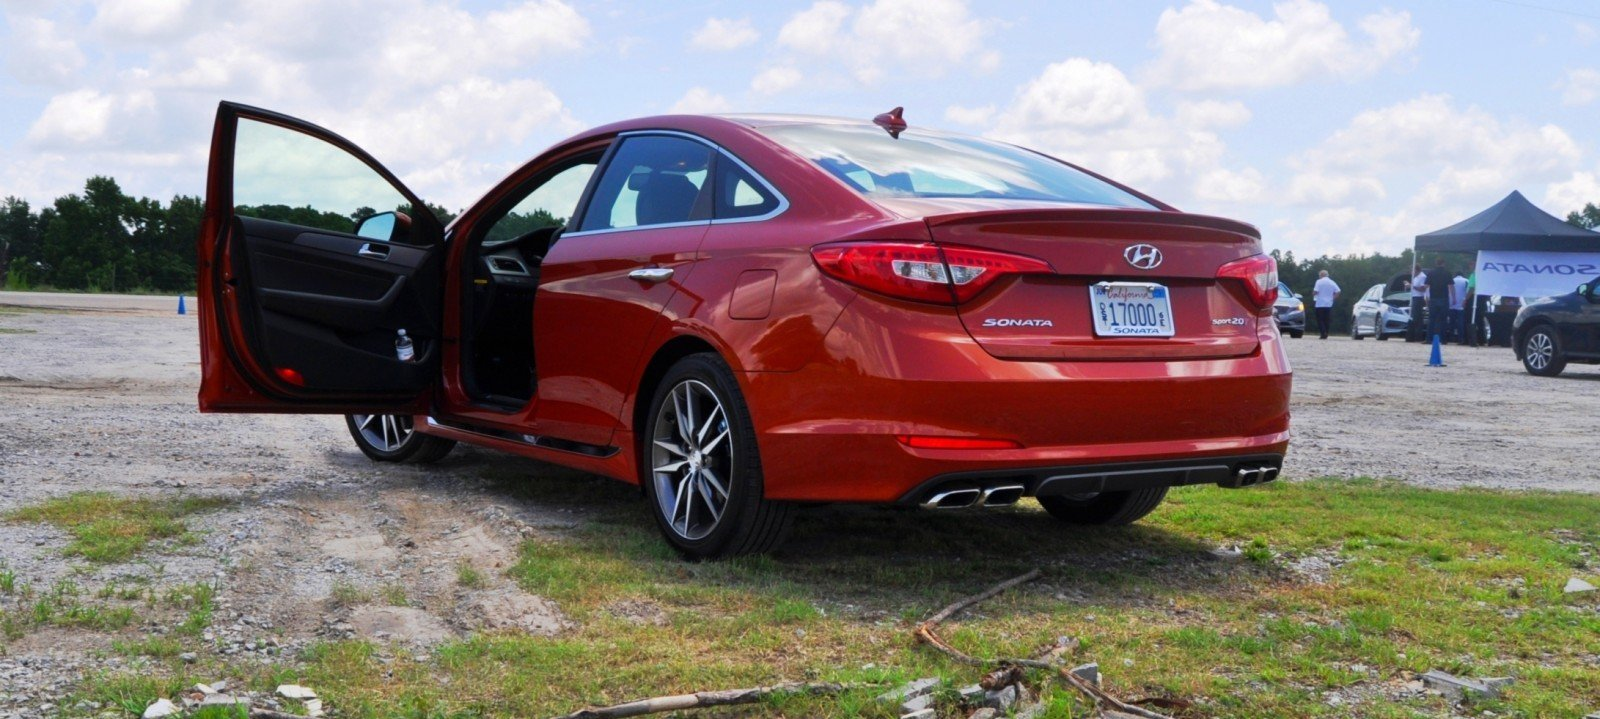 2015 hyundai sonata sport 2 0t 160 photos from national media launch 70. Black Bedroom Furniture Sets. Home Design Ideas